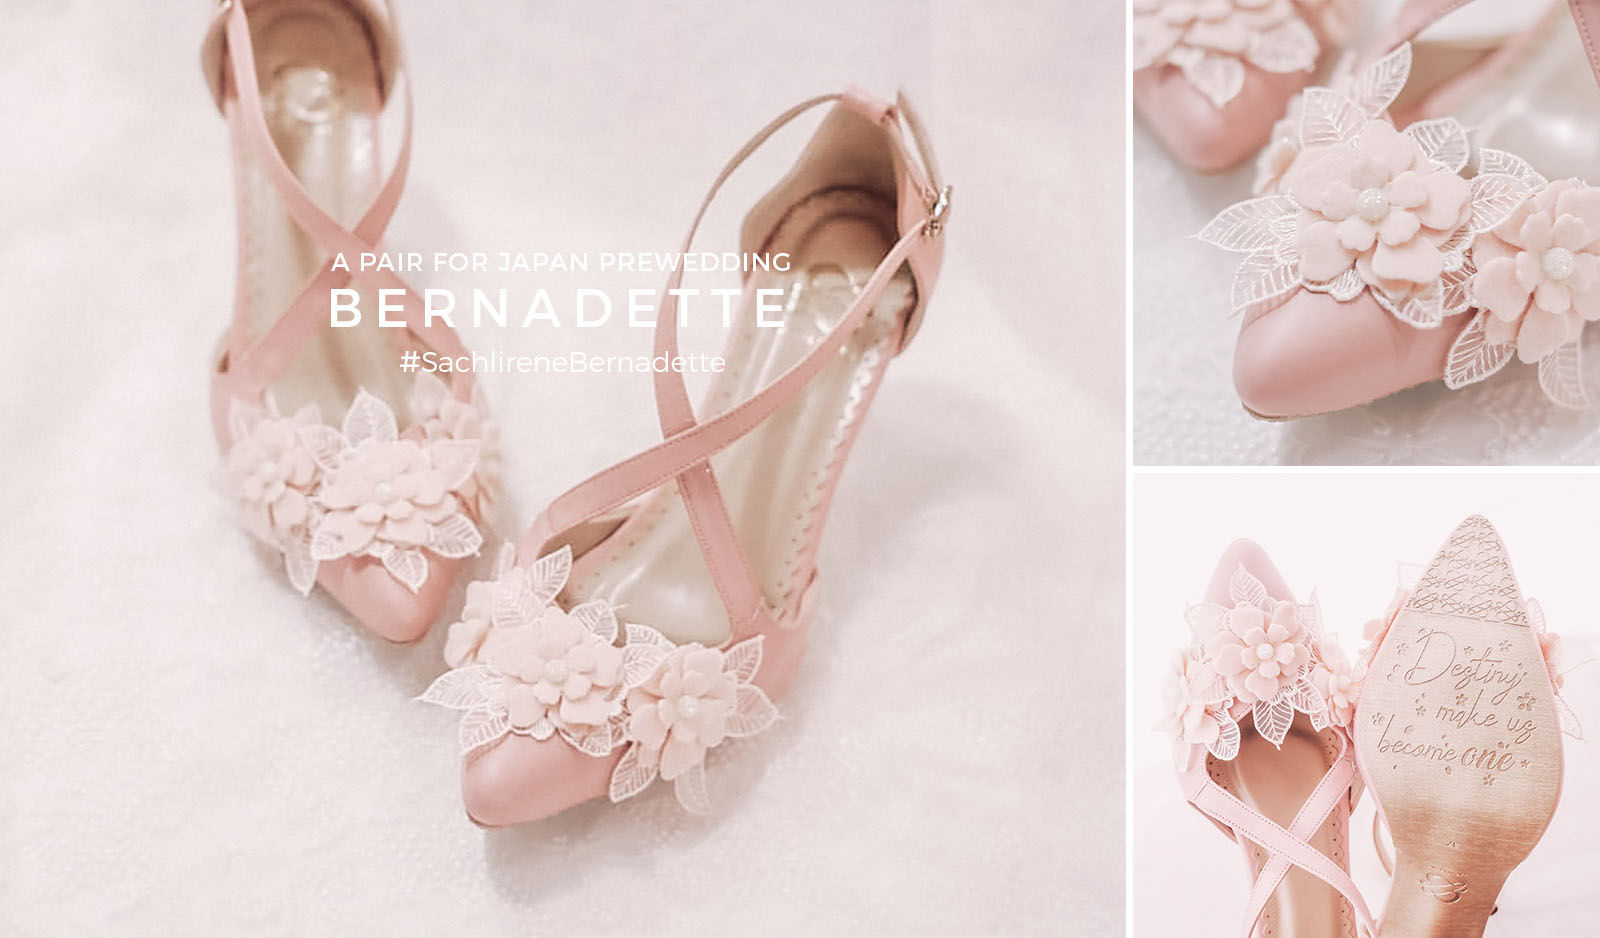 SHOP BERNADETTE